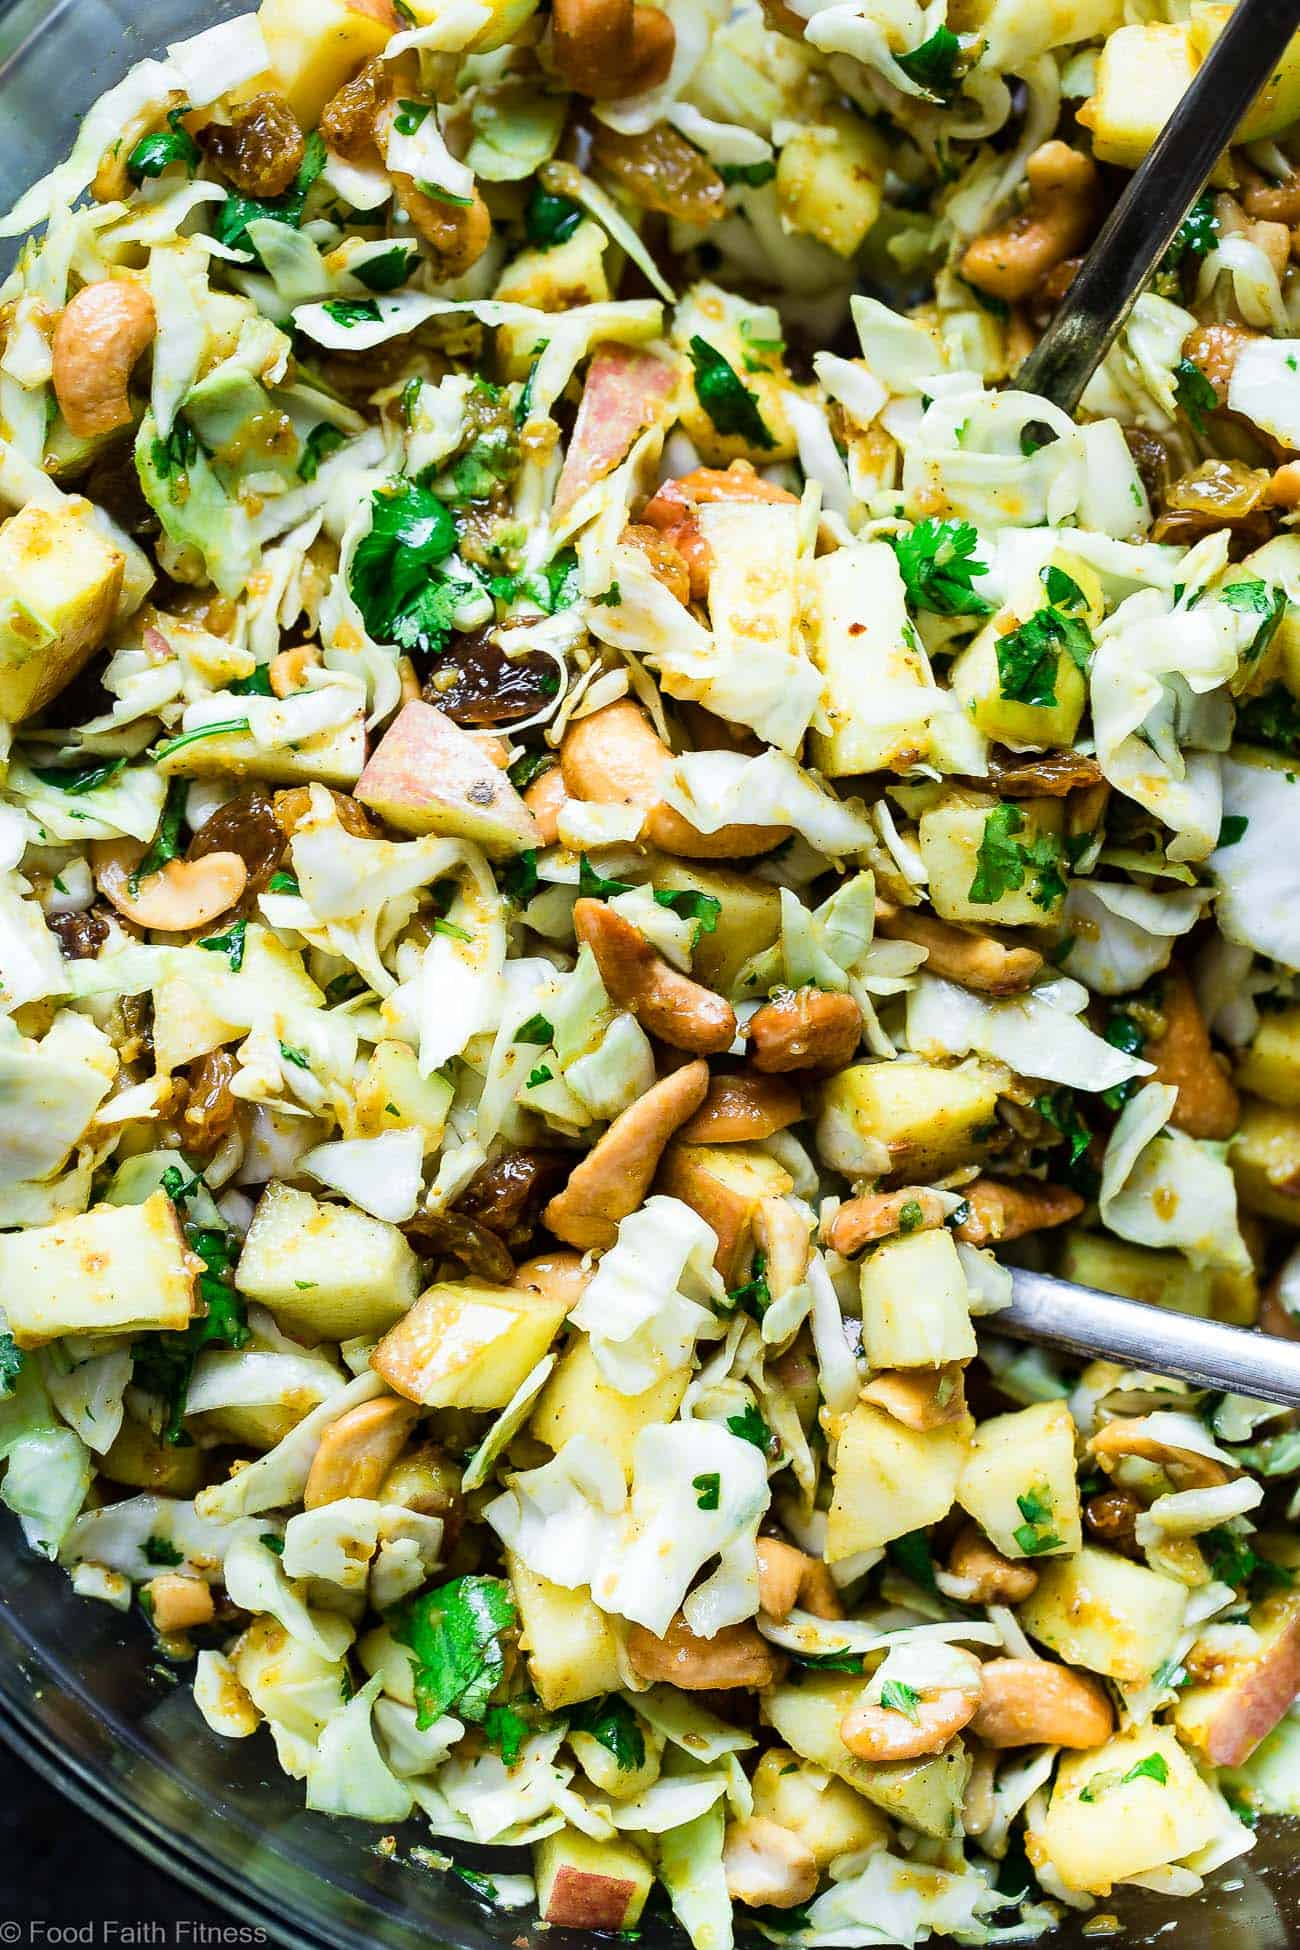 Curry Cashew Shredded Cabbage Salad with Apples - A sugar and gluten free healthy raw cabbage salad that is mixed with a creamy curry dressing and crunchy cashews! A healthy, paleo and whole30 side dish that everyone will love! | Foodfaithfitness.com | @FoodFaithFit